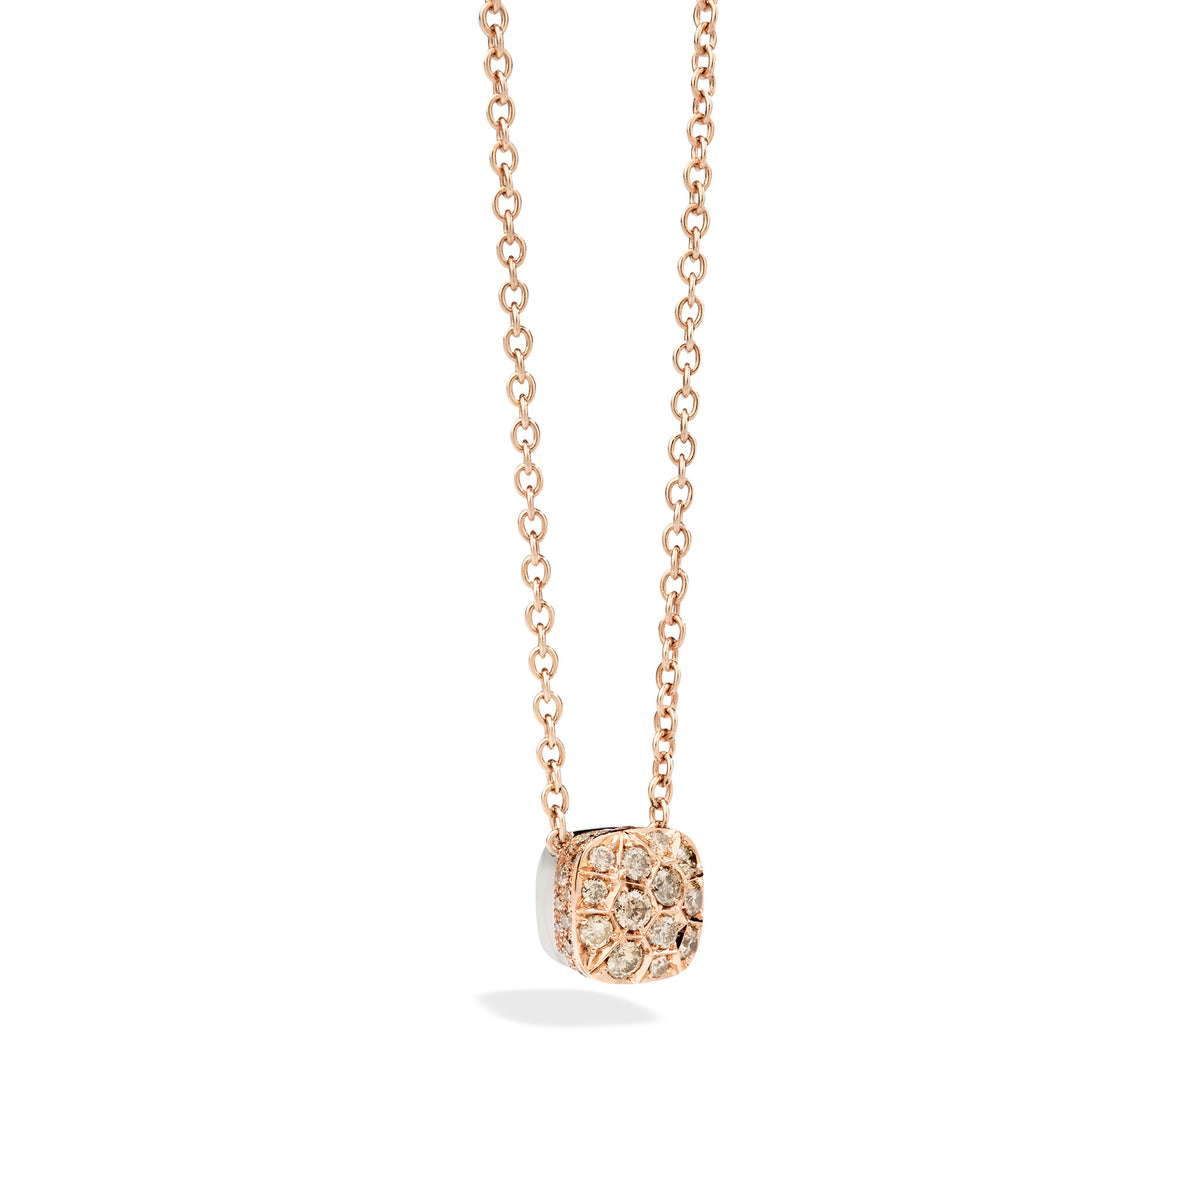 Nudo Necklace with Large Pendant in 18k Rose and White Gold with Brown Diamonds